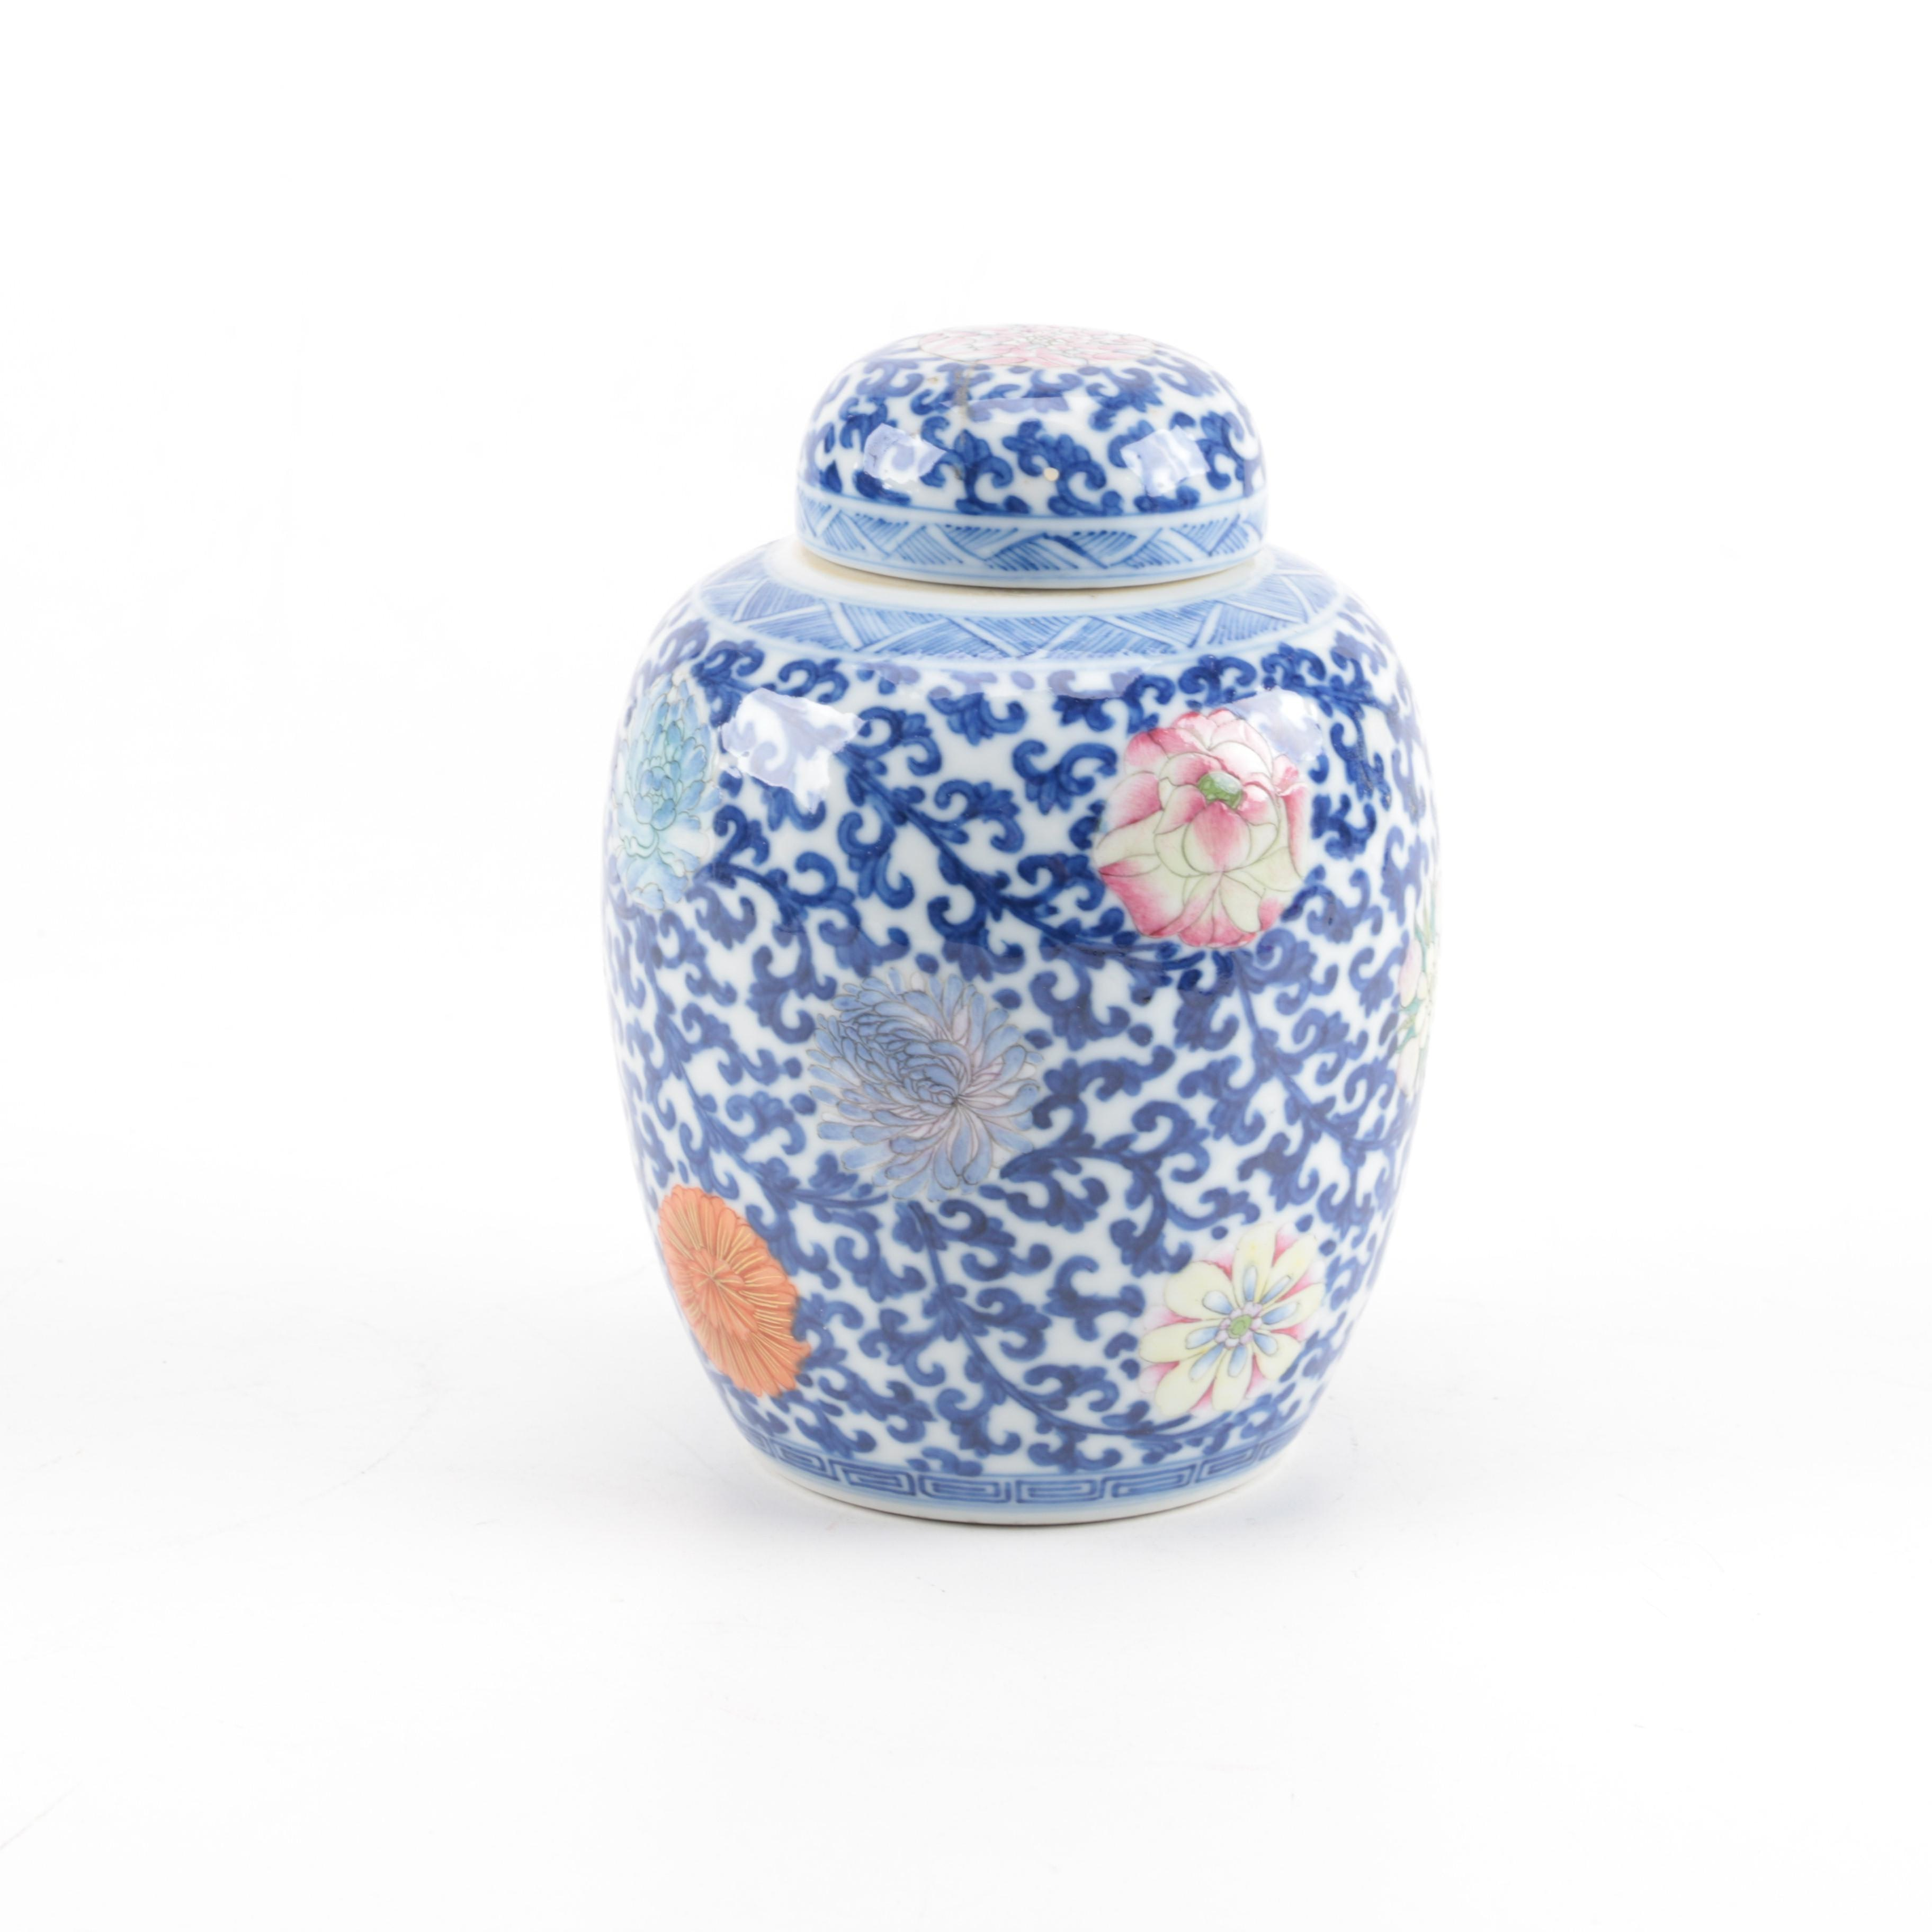 Chinese Porcelain Ginger Jar and Wood Wall Relief